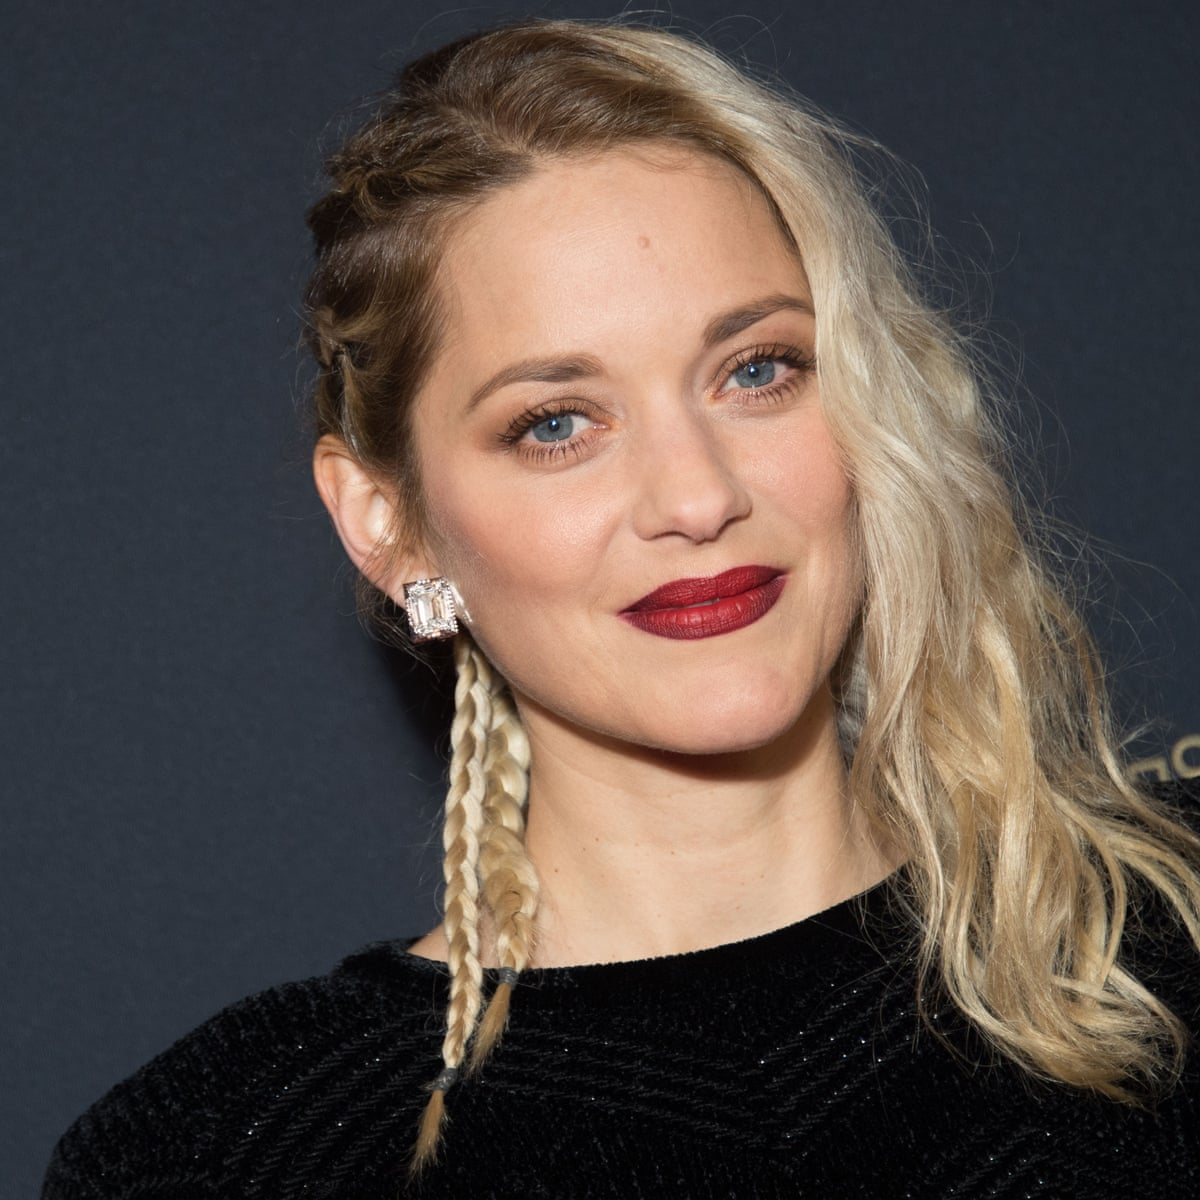 Marion Cotillard On Woody Allen The Experience We Had Together